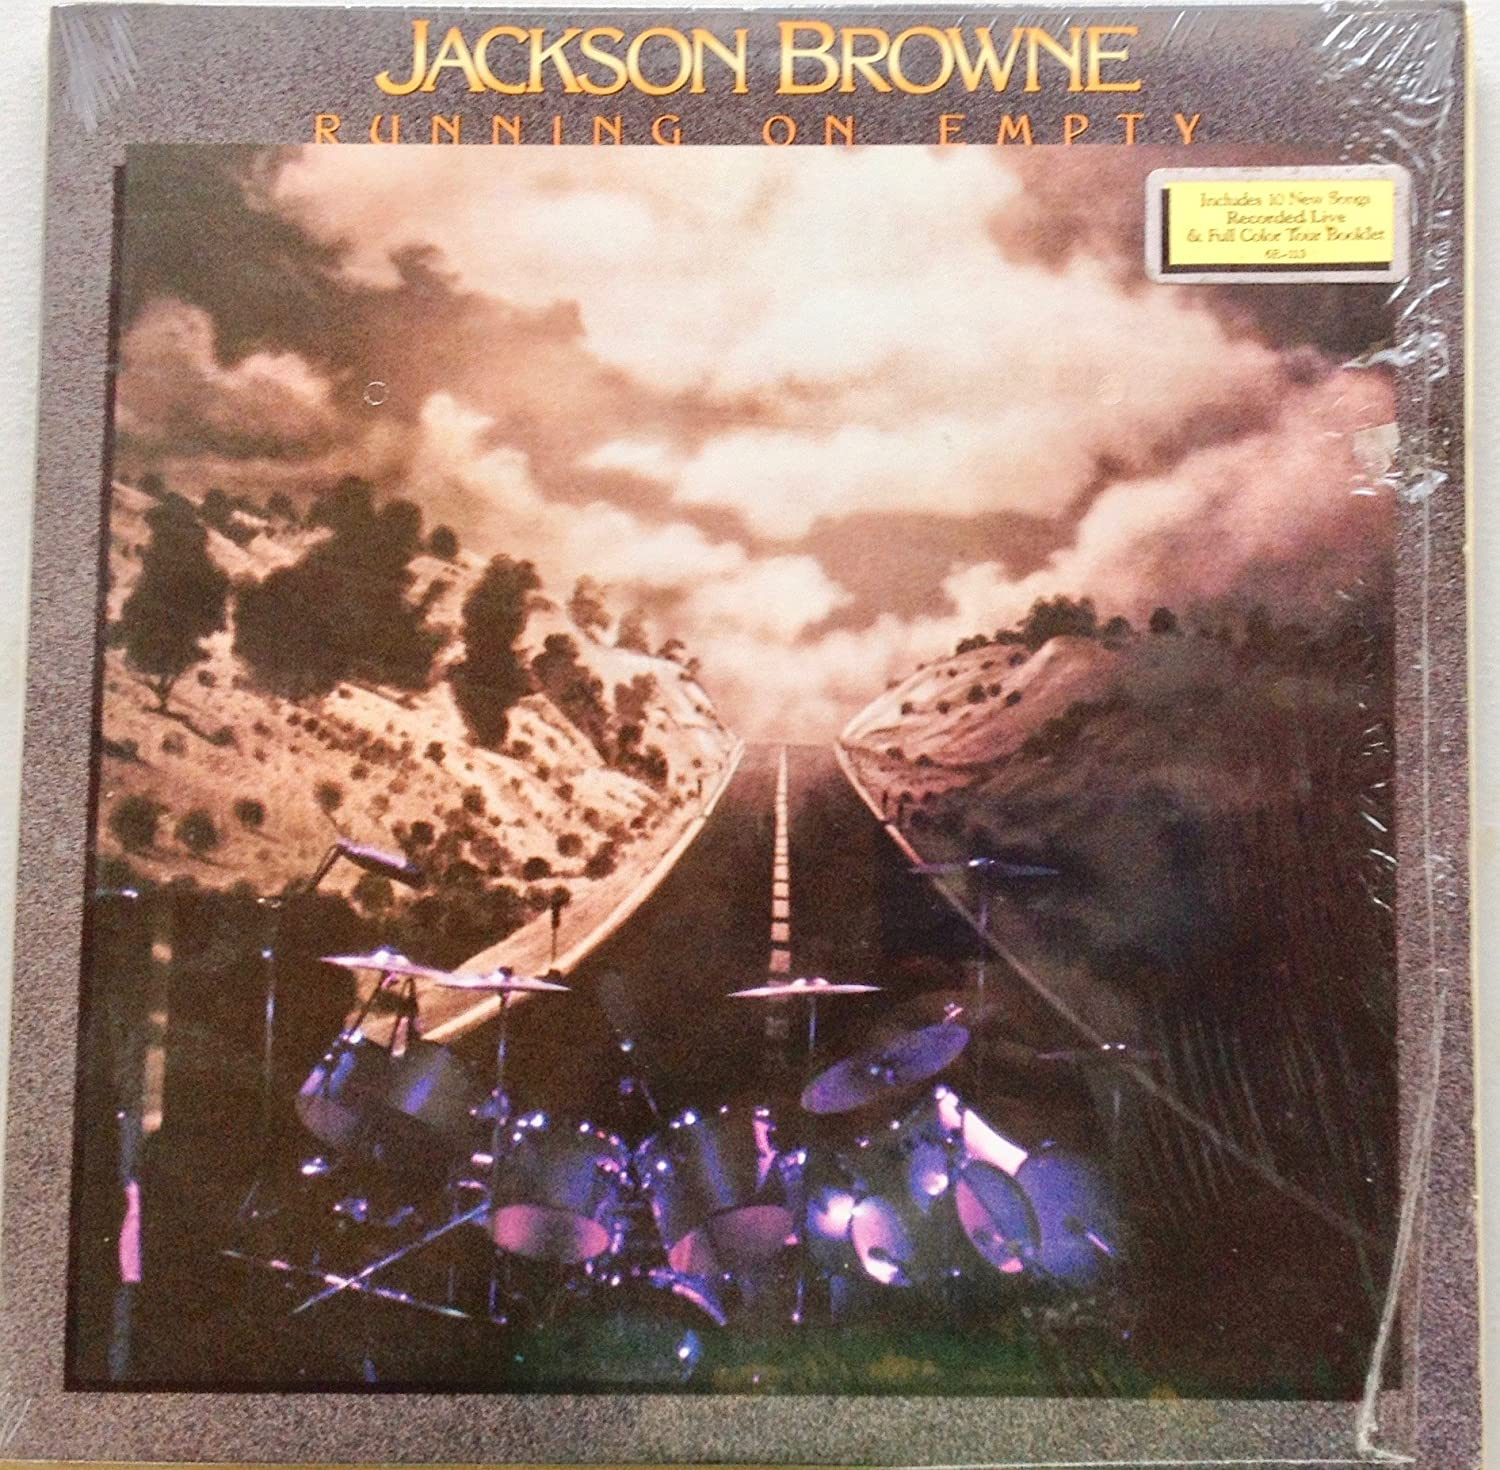 LP Jackson Browne–Running on Empty, 1977